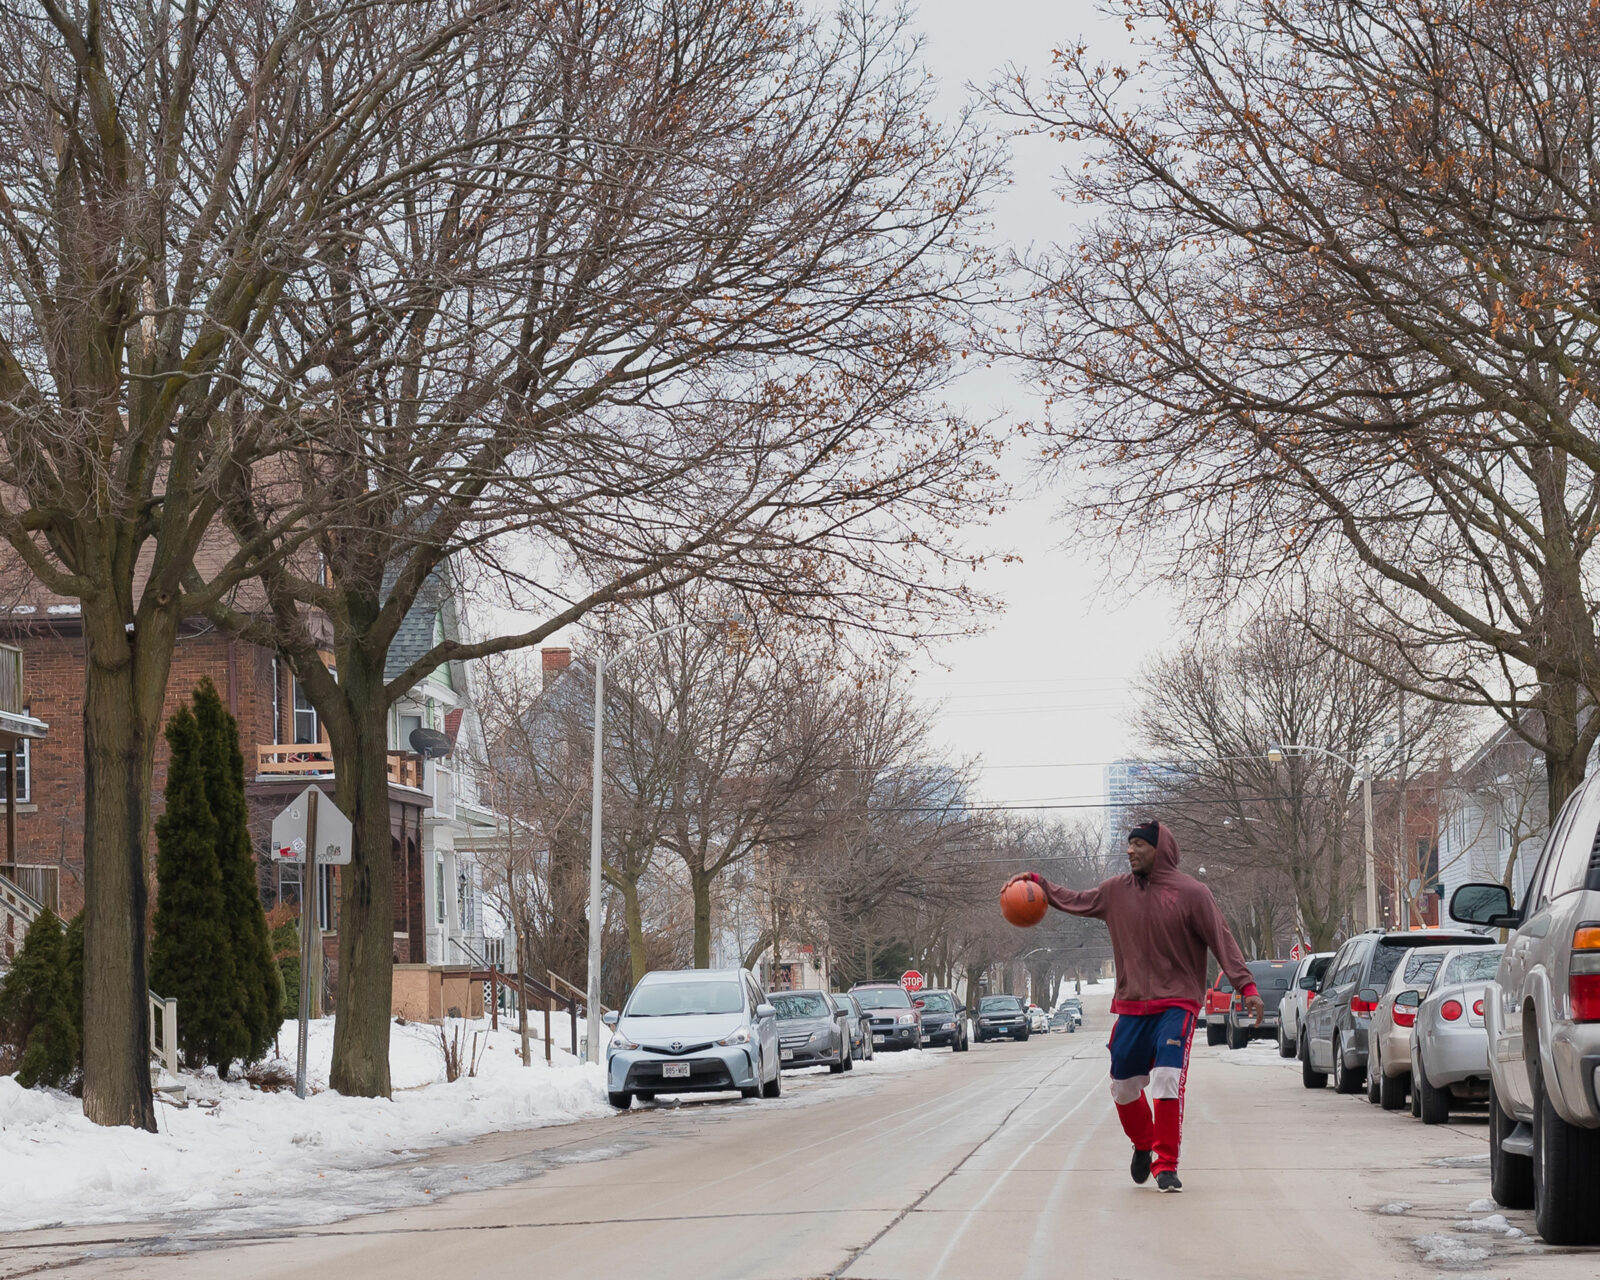 a man in the middle of a neighborhood street with a basketball